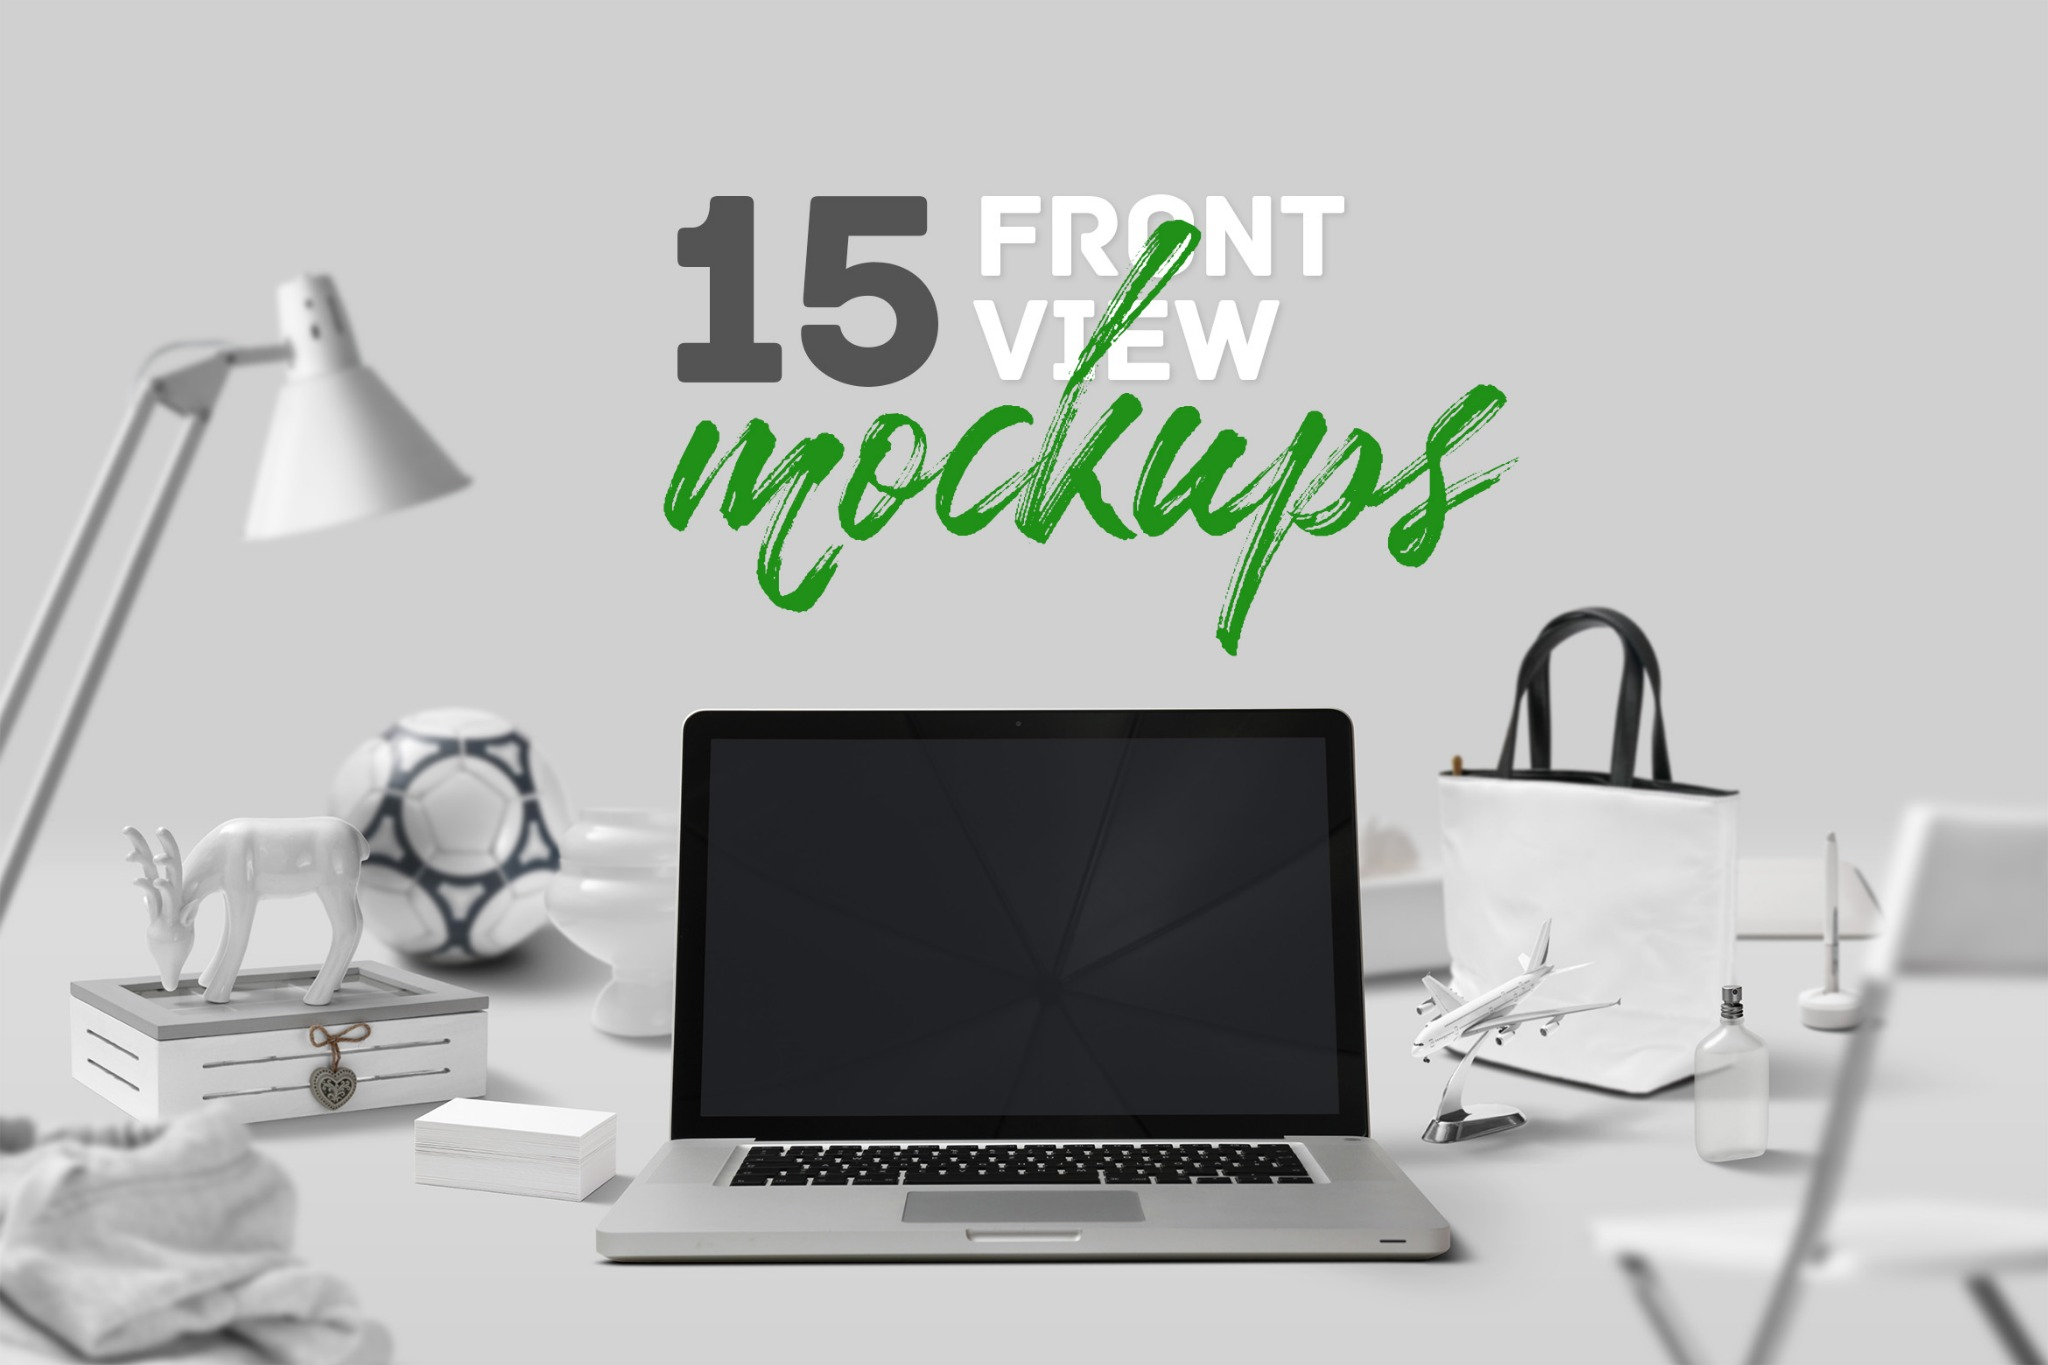 15 Frontview Mockups